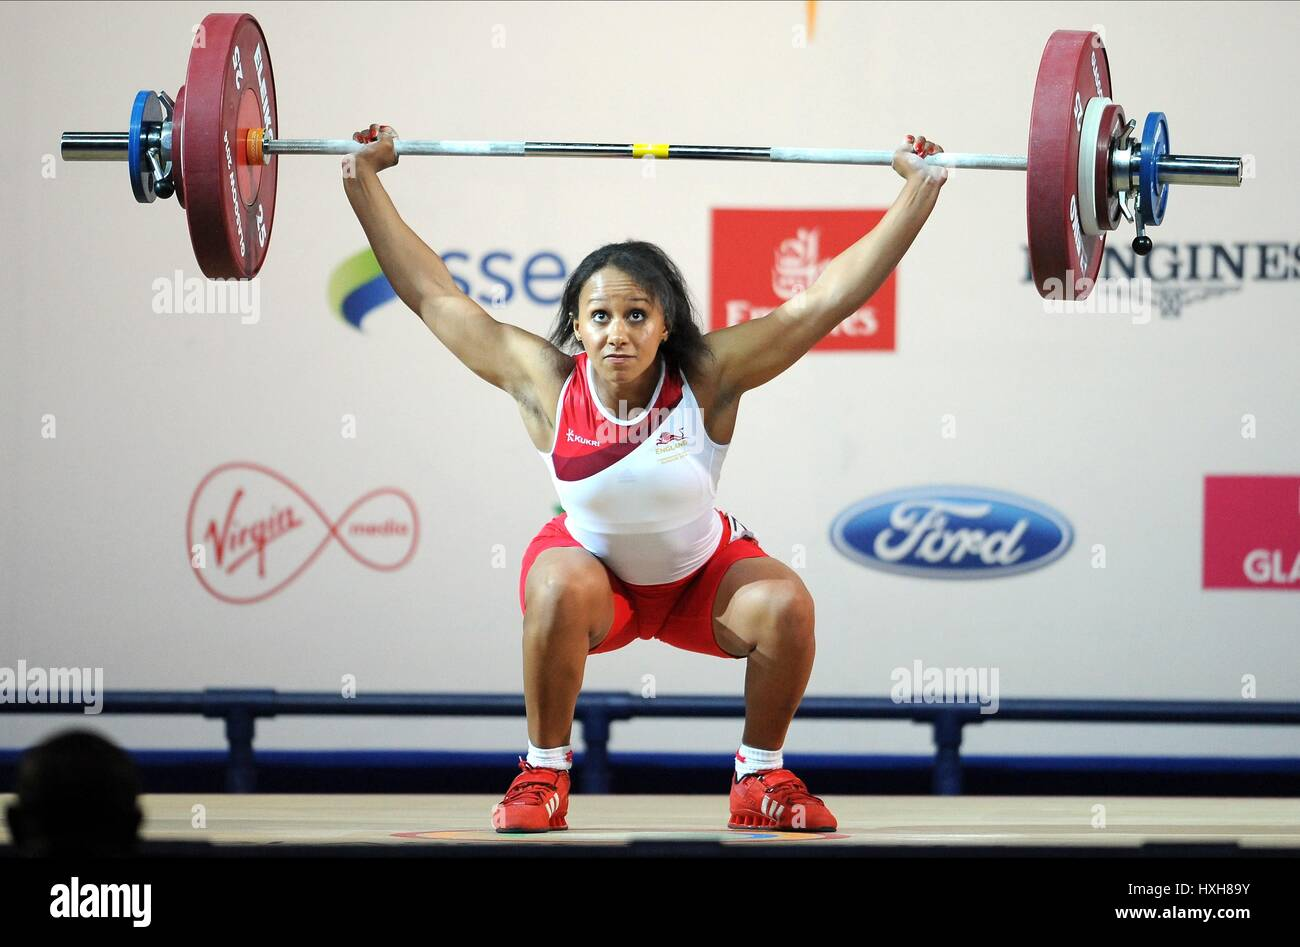 ZOE SMITH WOMEN'S WEIGHTLIFTING WOMEN'S WEIGHTLIFTING CLYDE AUDITORIUM GLASGOW SCOTLAND 26 July 2014 - Stock Image